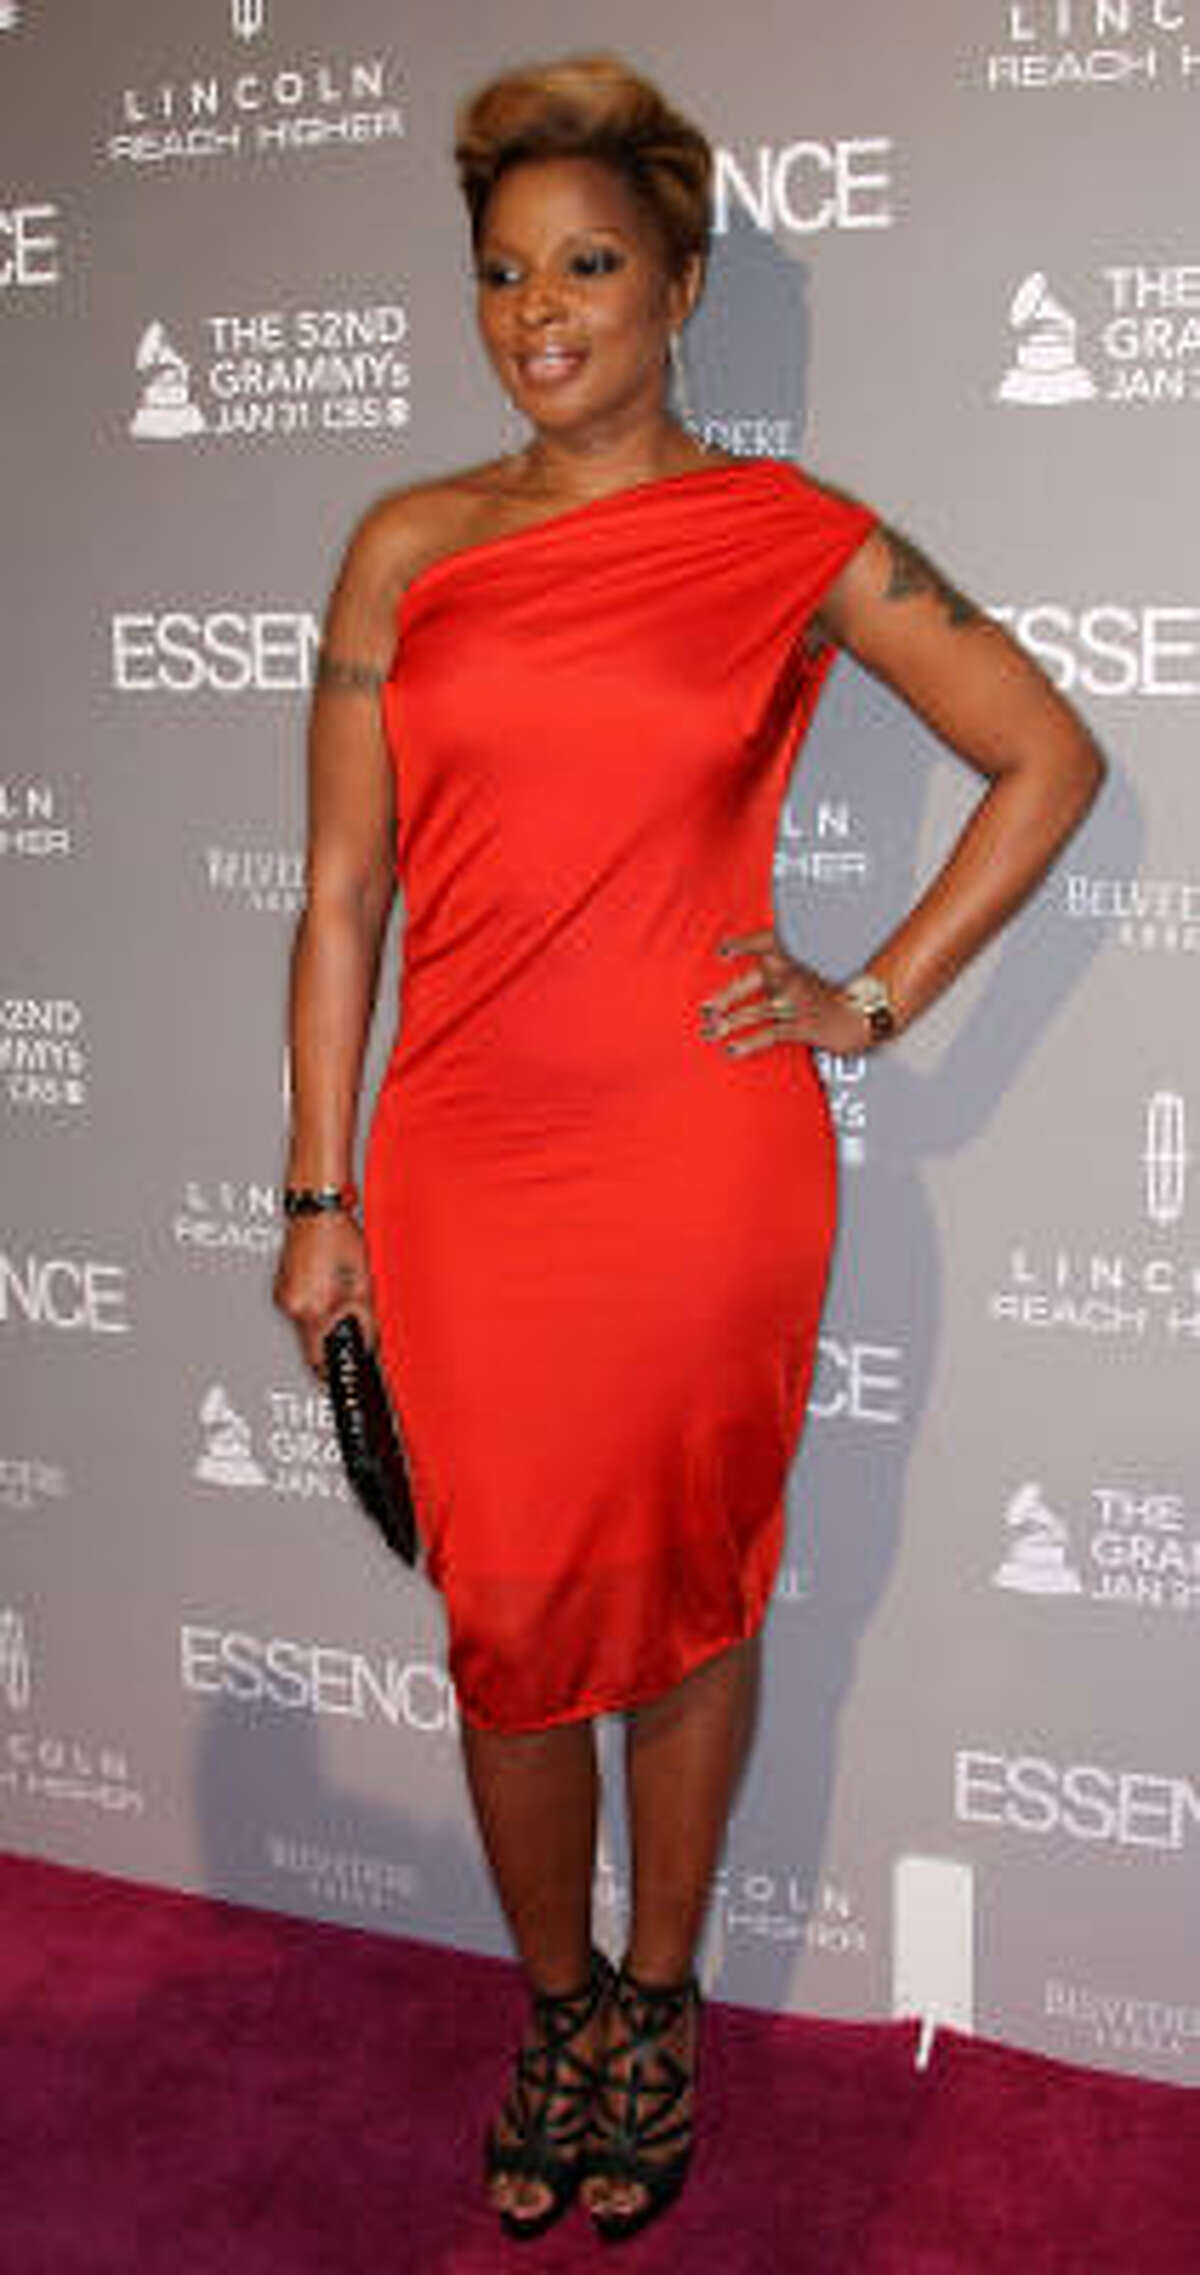 At the Essence Black Women in Music event in L.A., she rocks the cool one-shoulder dress.